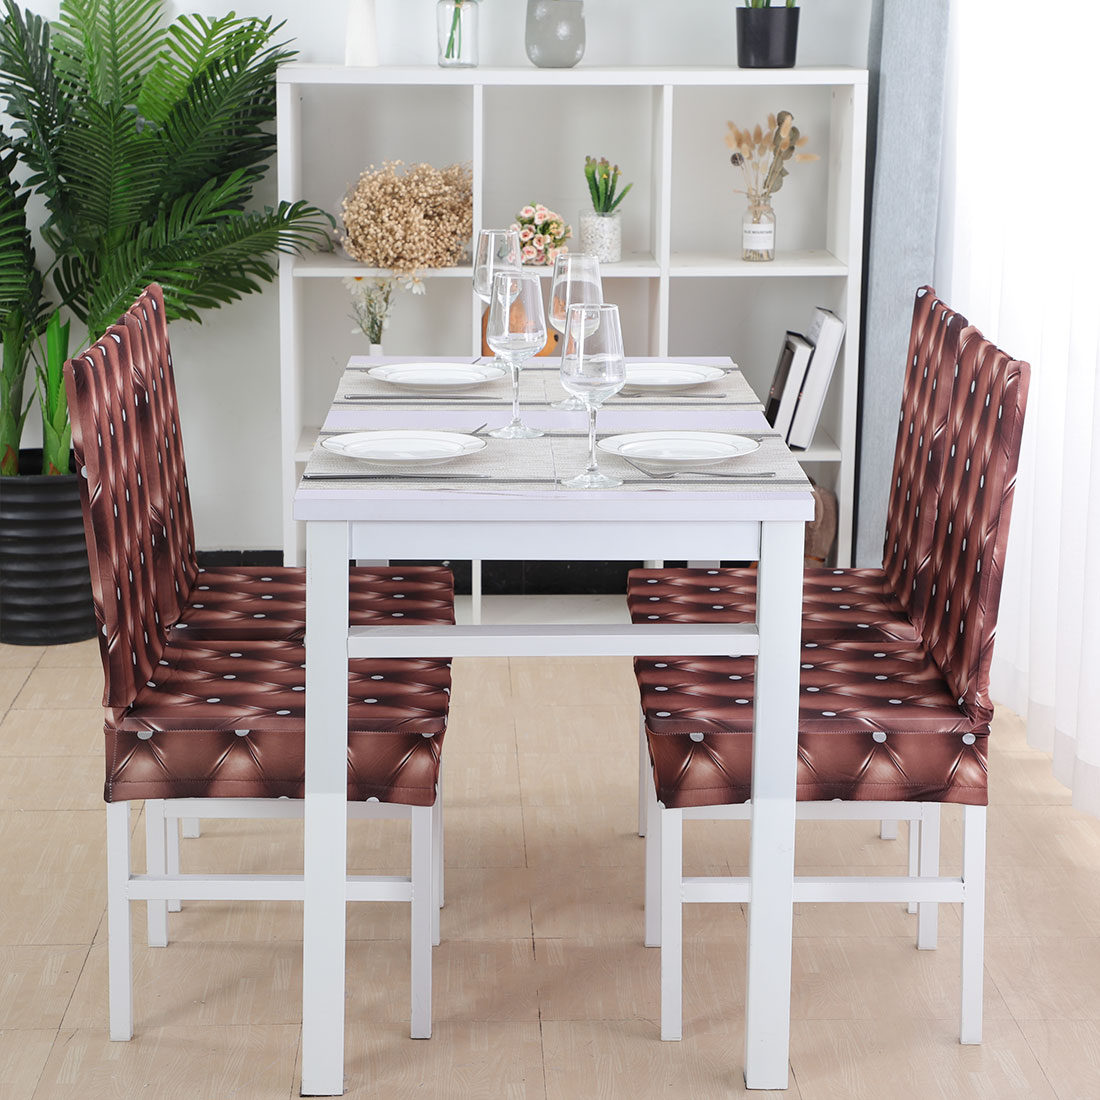 Stretchy Kitchen Dining Chair Cover Restaurant Wedding Part Decor Set of 4